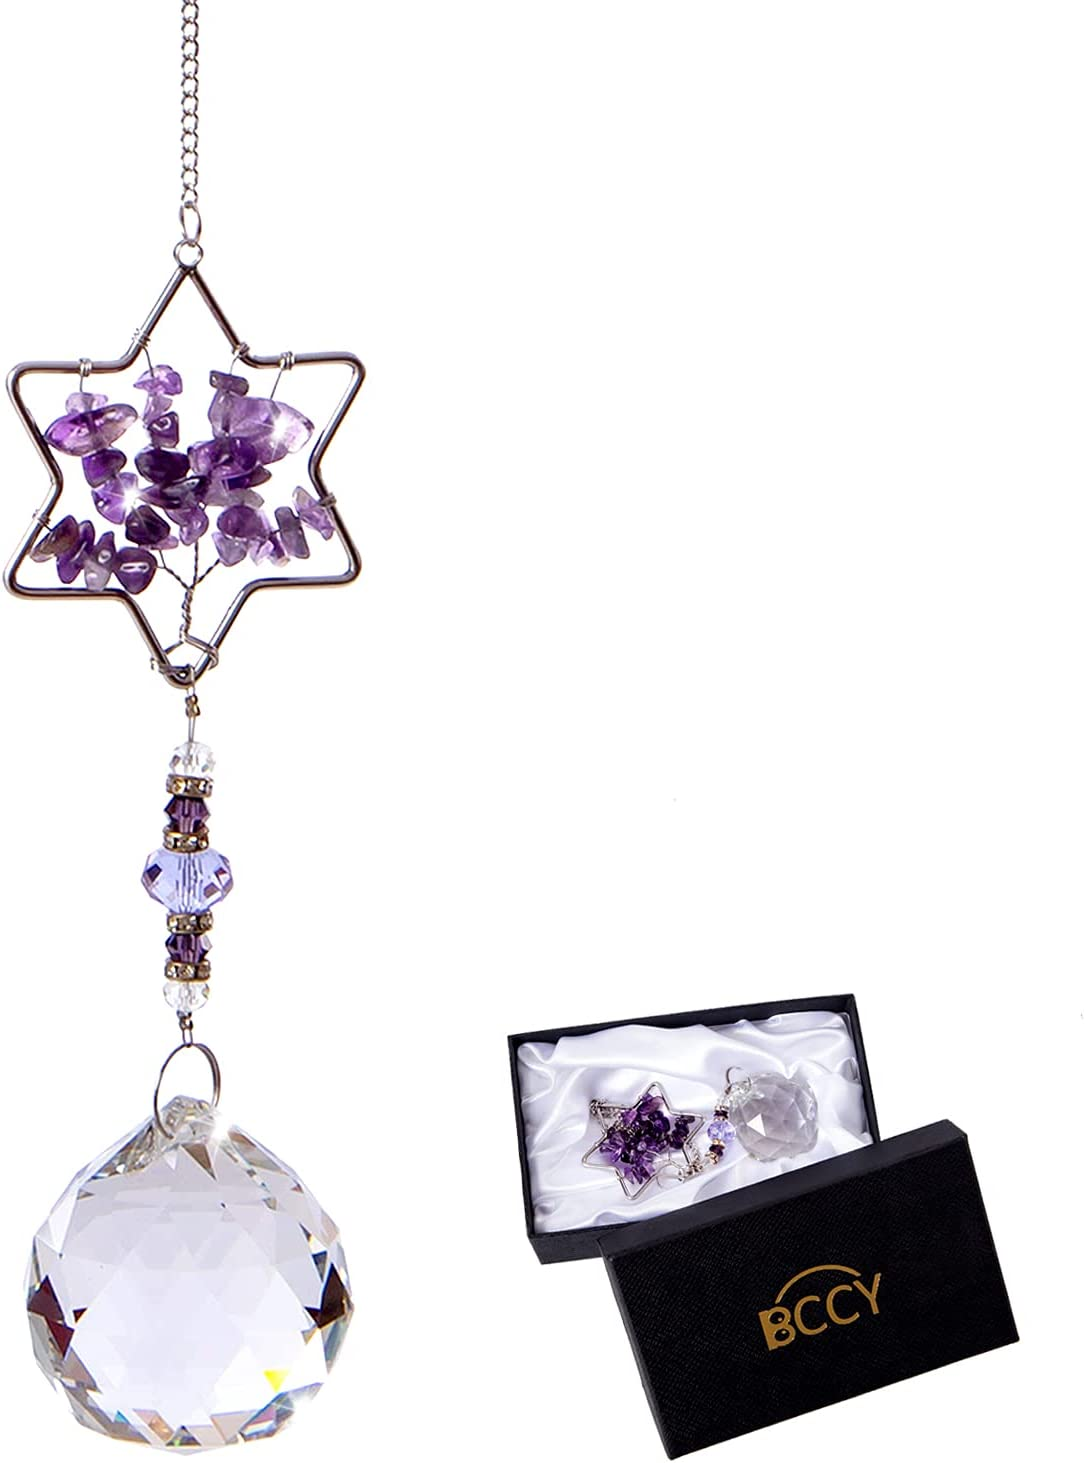 BCCY Crystal Suncatcher Ball Prism Ornament Sun Hanging Pendant Price reduction Ranking TOP18